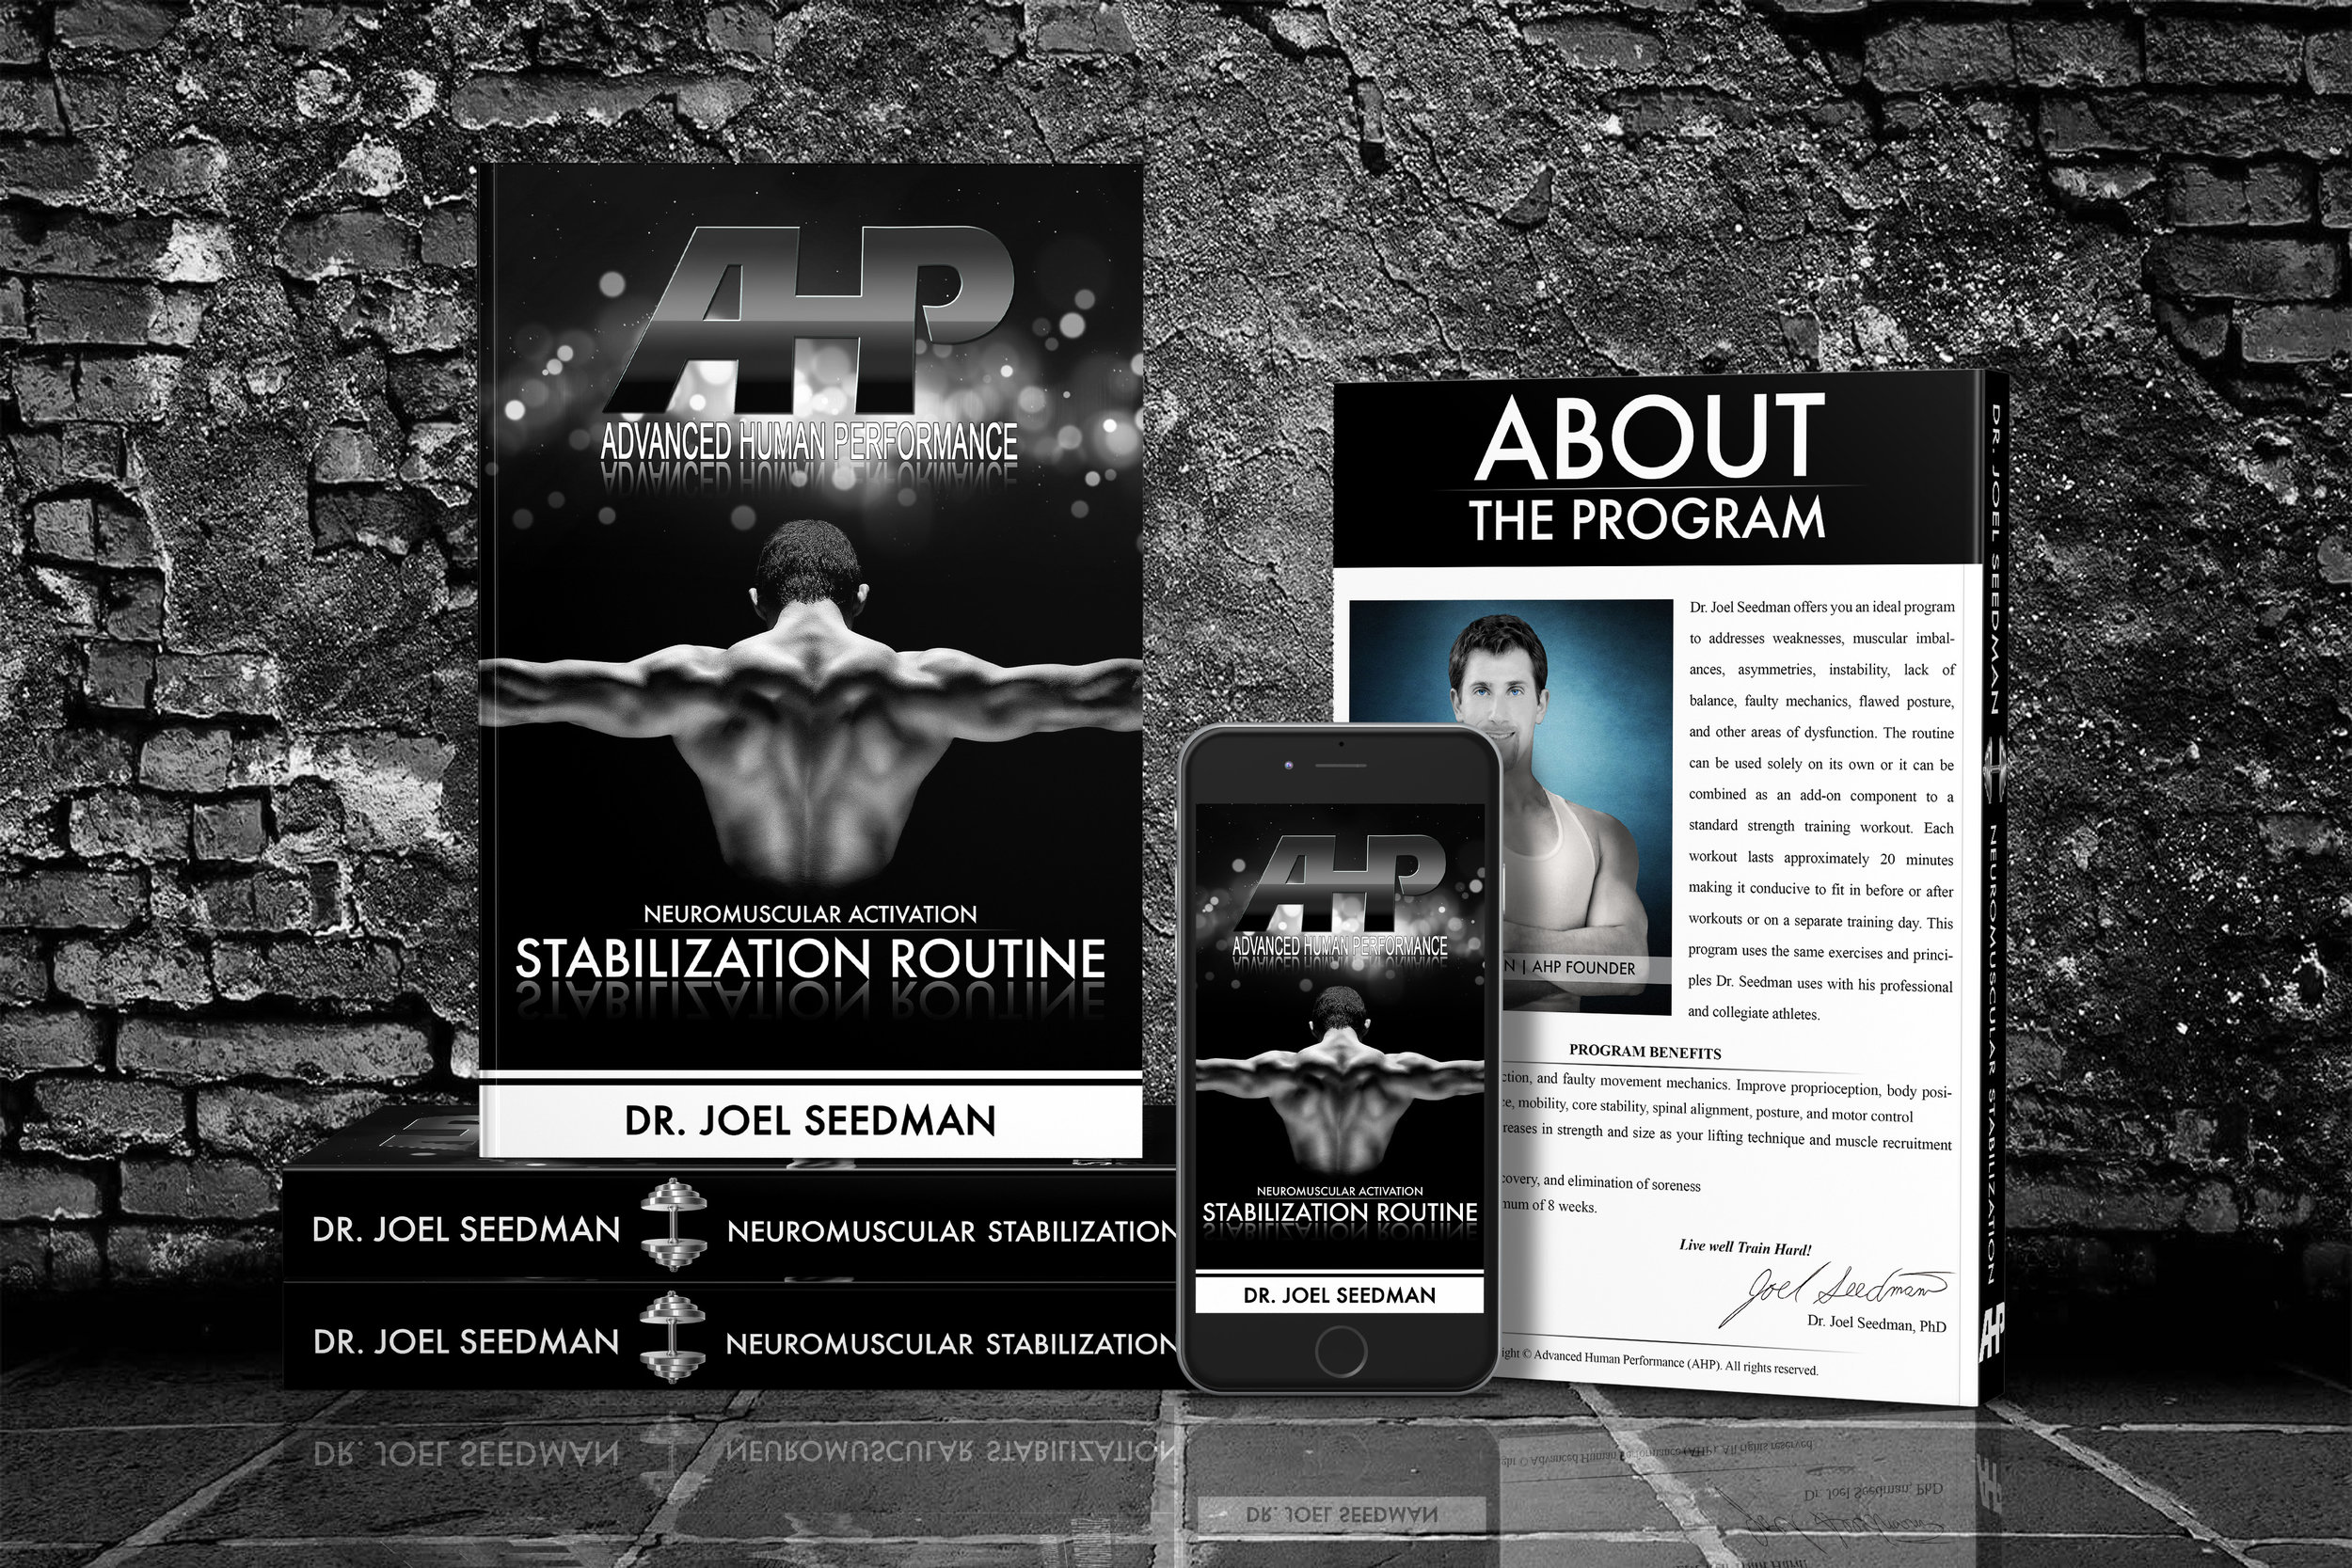 Stabilization Book Display - Main Product Page.jpg